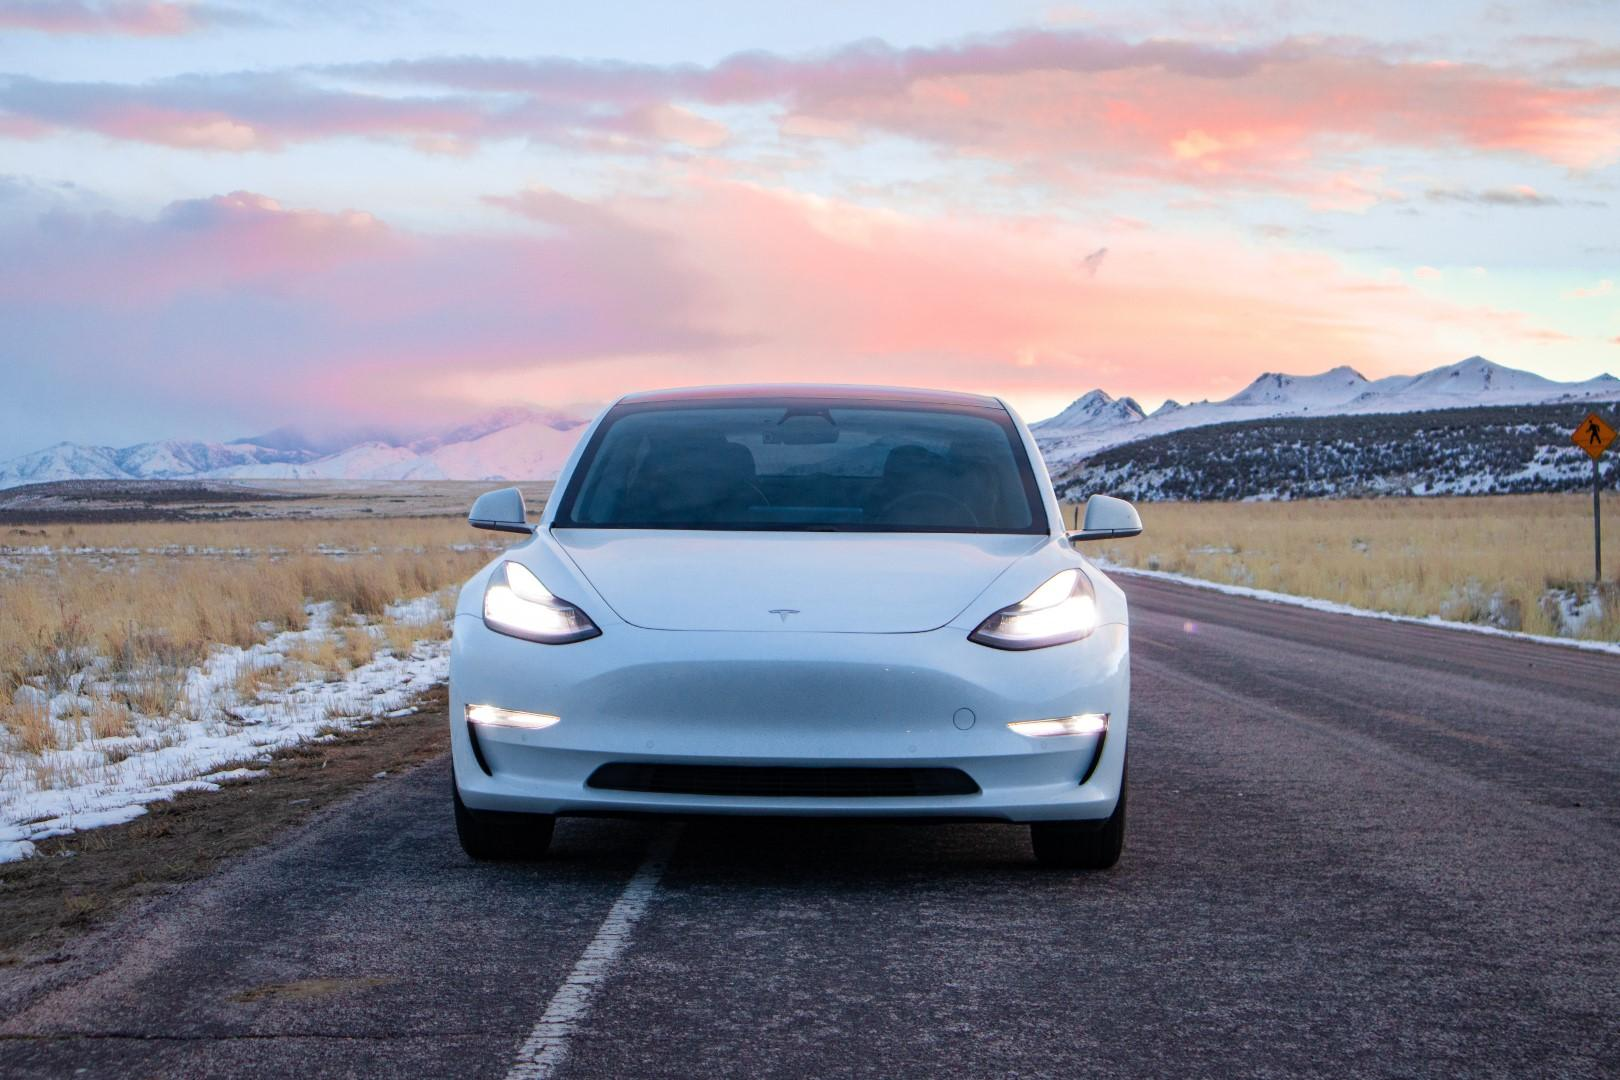 Tesla And Autonomy: The Possibility Of Fast Progress